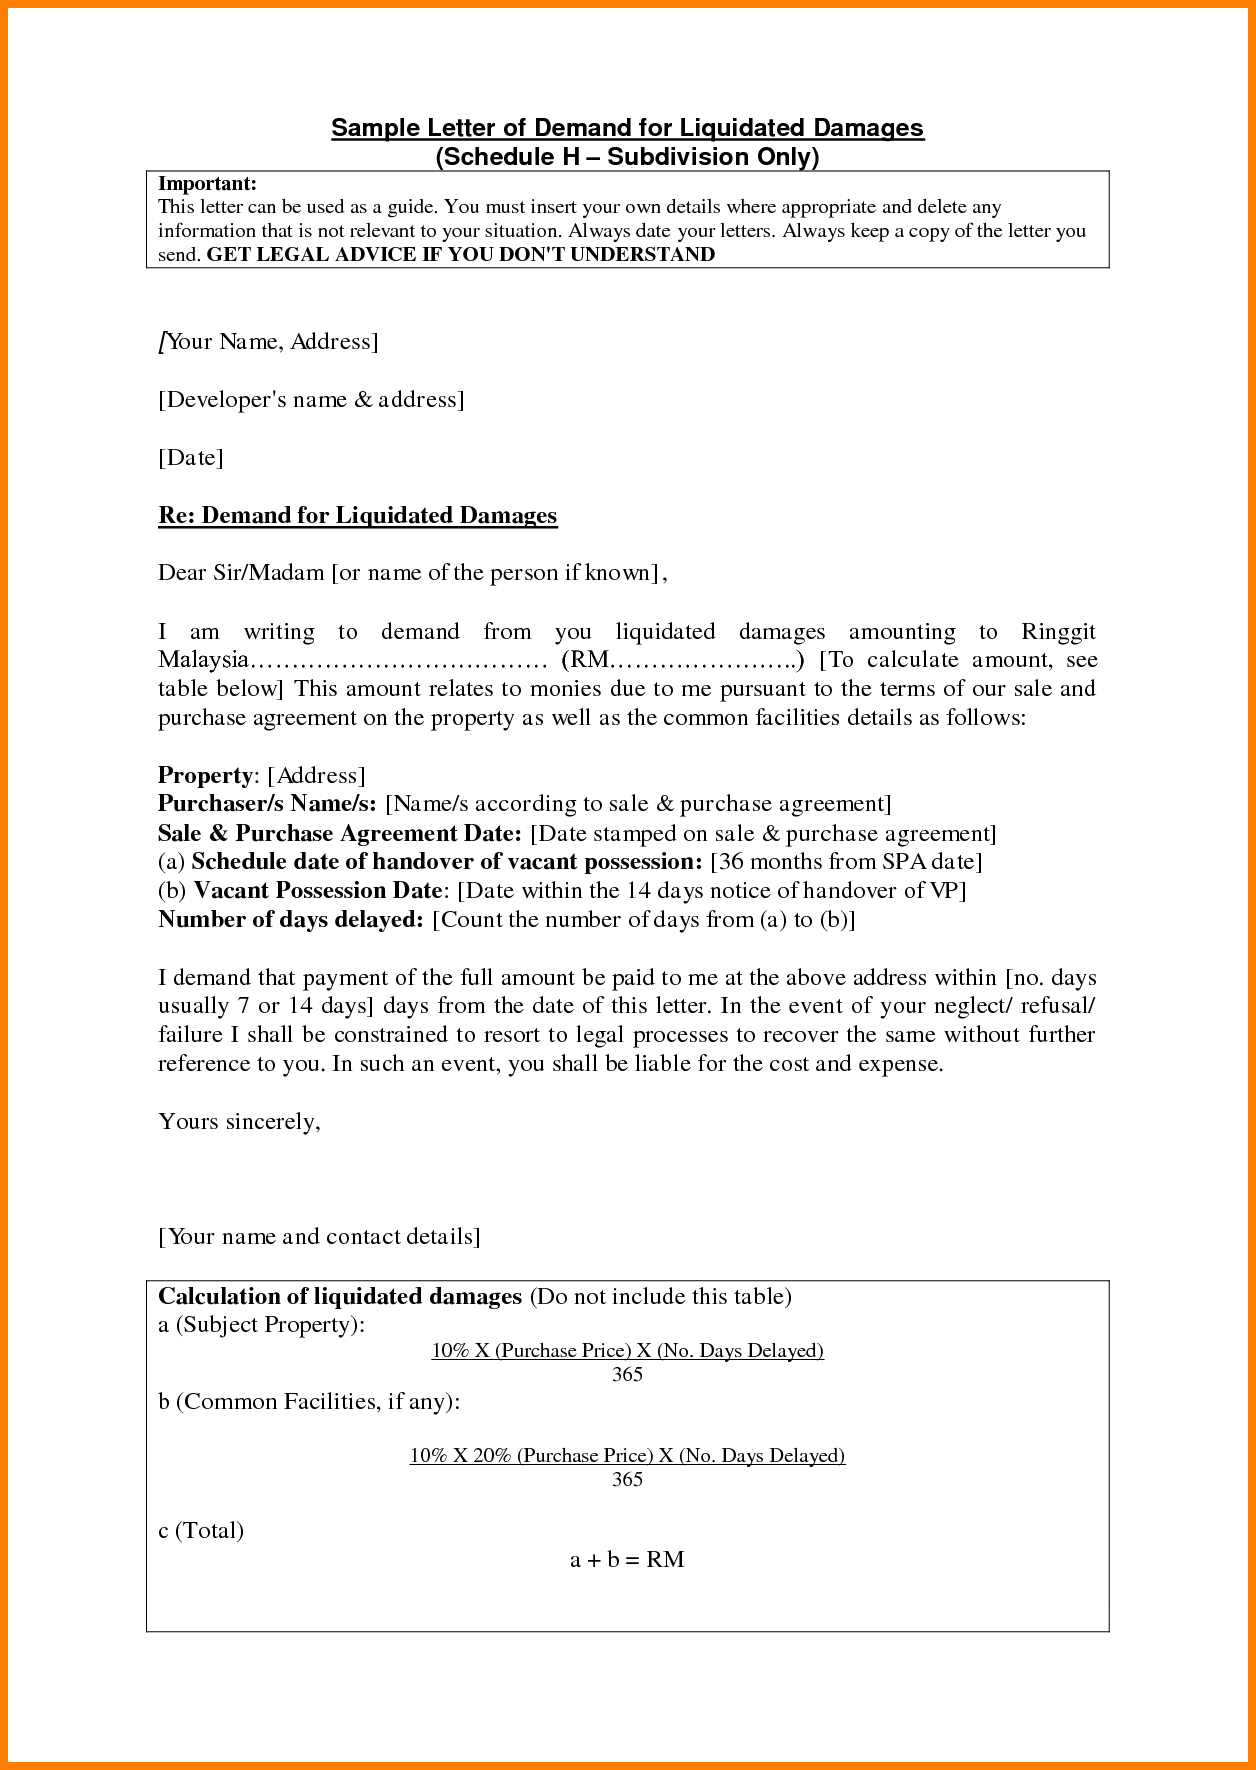 liquidated damages letter template example-letter sample claim salary email authorization united airlines plaint resolved 11-k